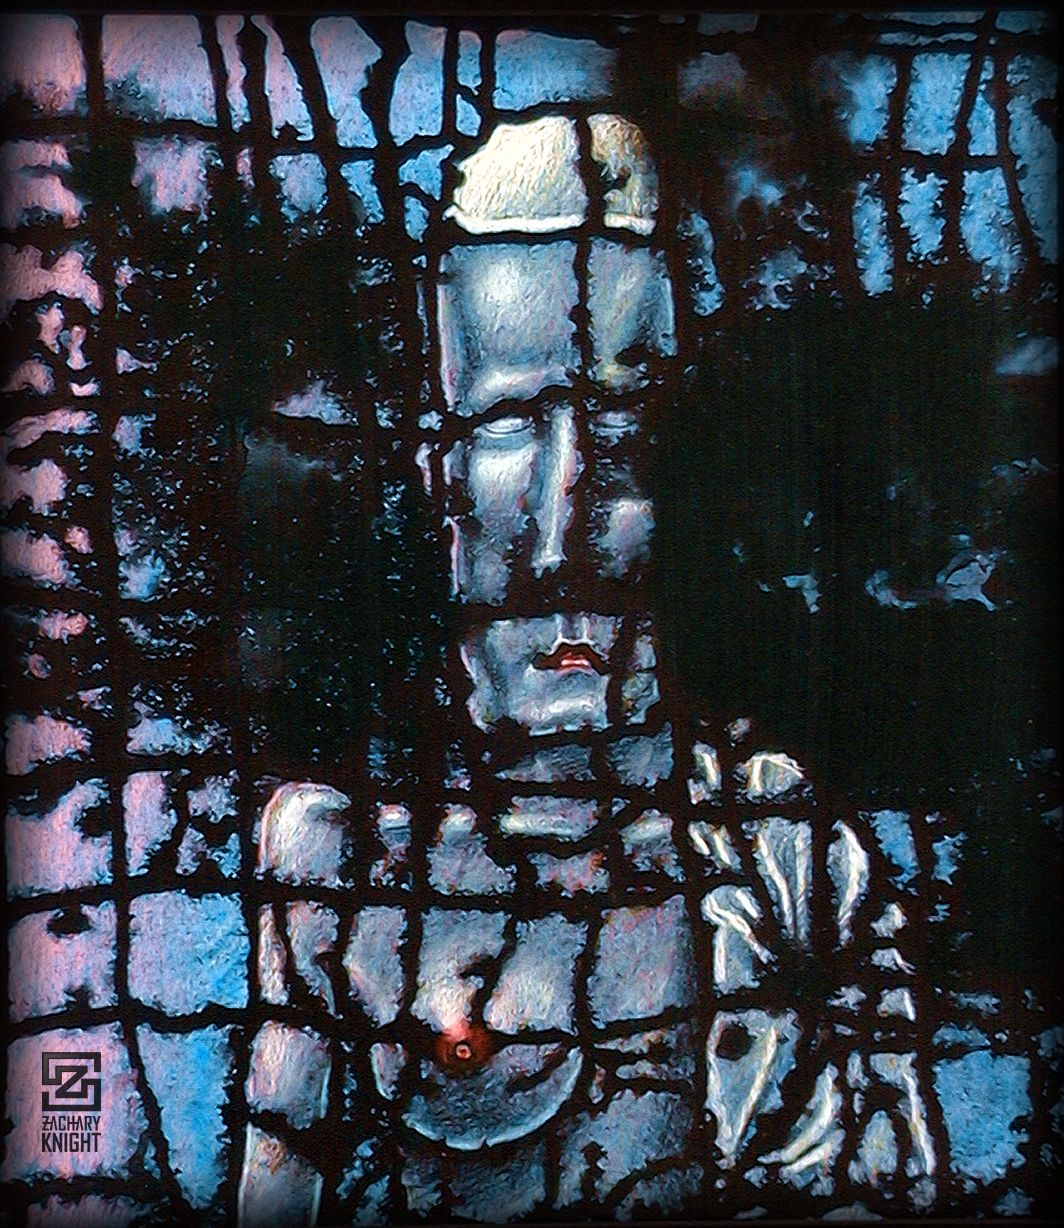 A dark painting with the segmented face of a man